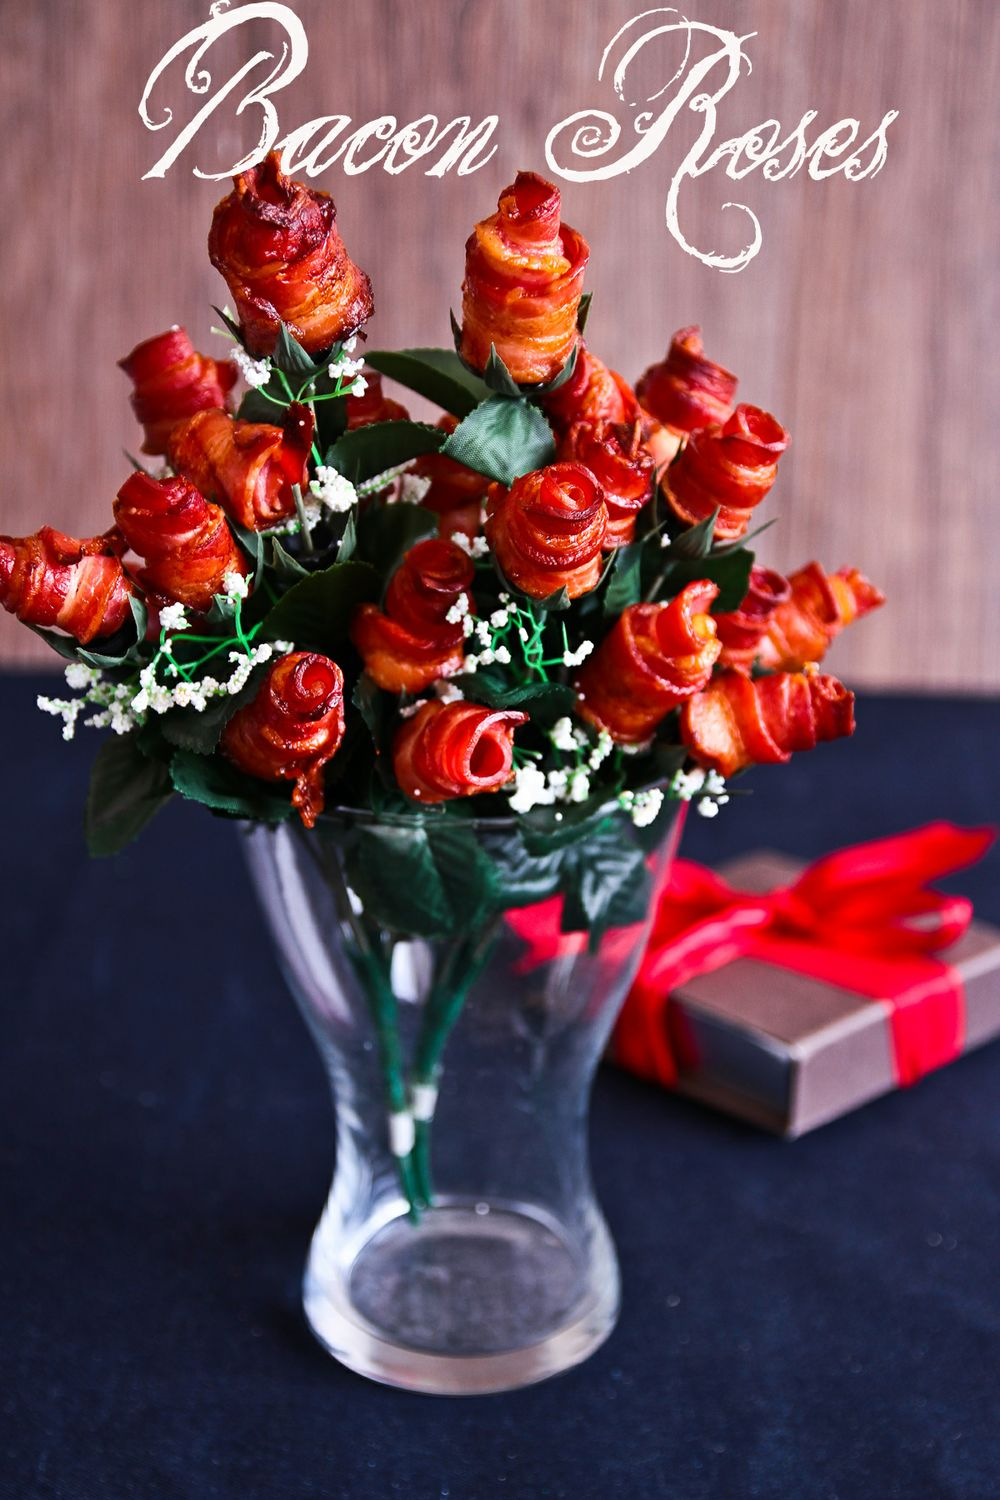 m-bacon-roses-1-3